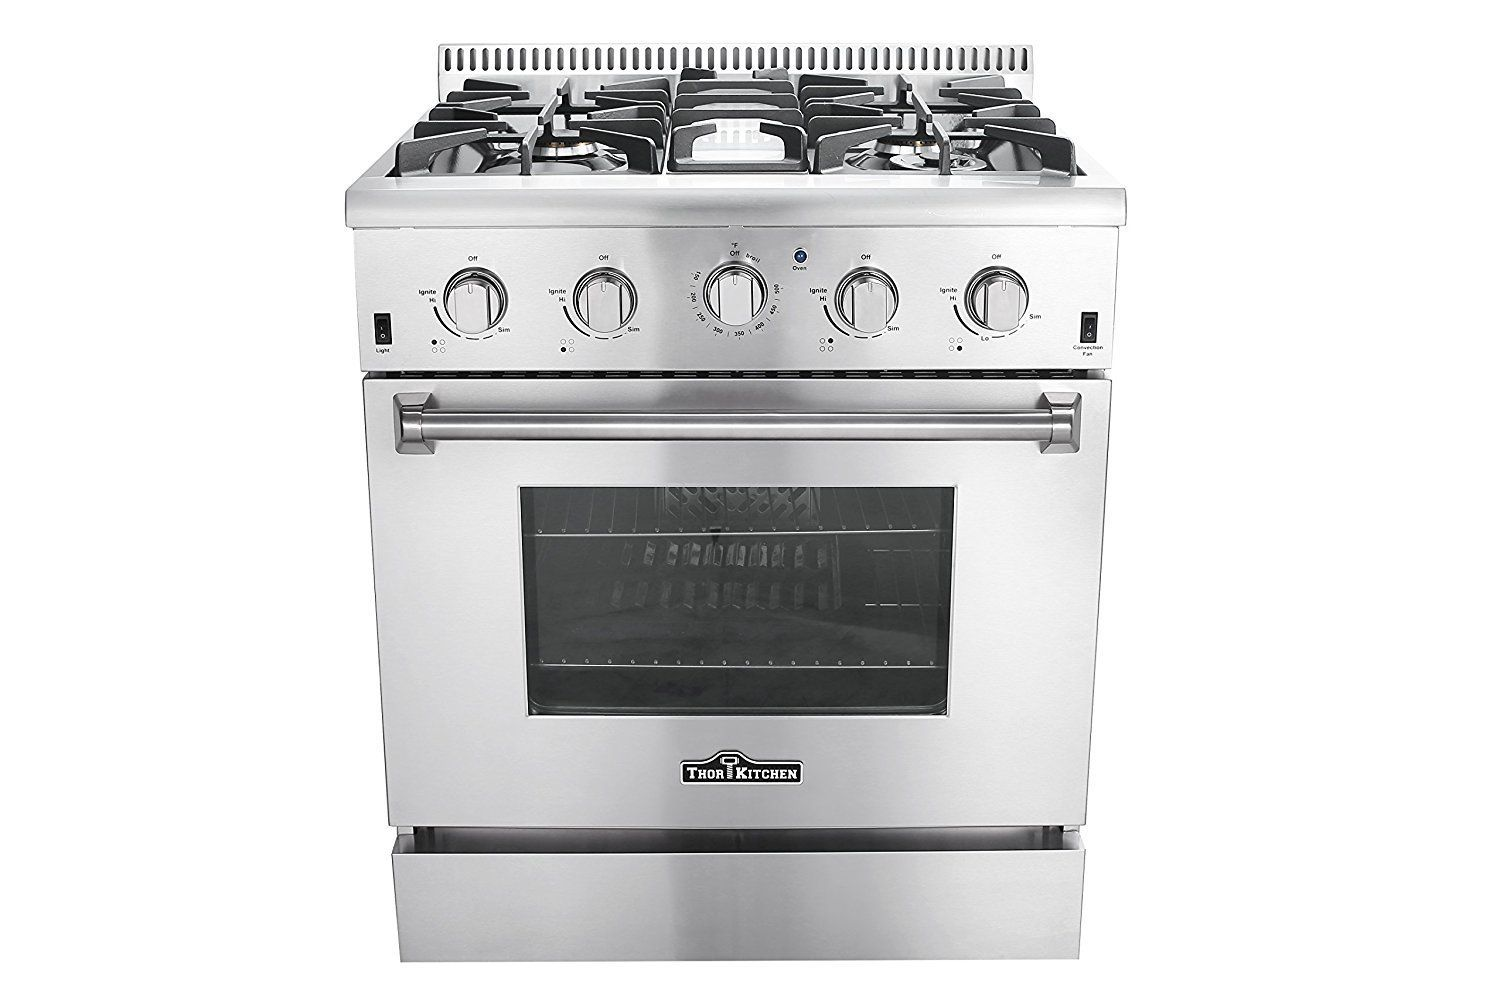 Thor Kitchen 30 Inch,5 Burners 1 Oven Freestanding or Built-in Gas Range Stainless Steel